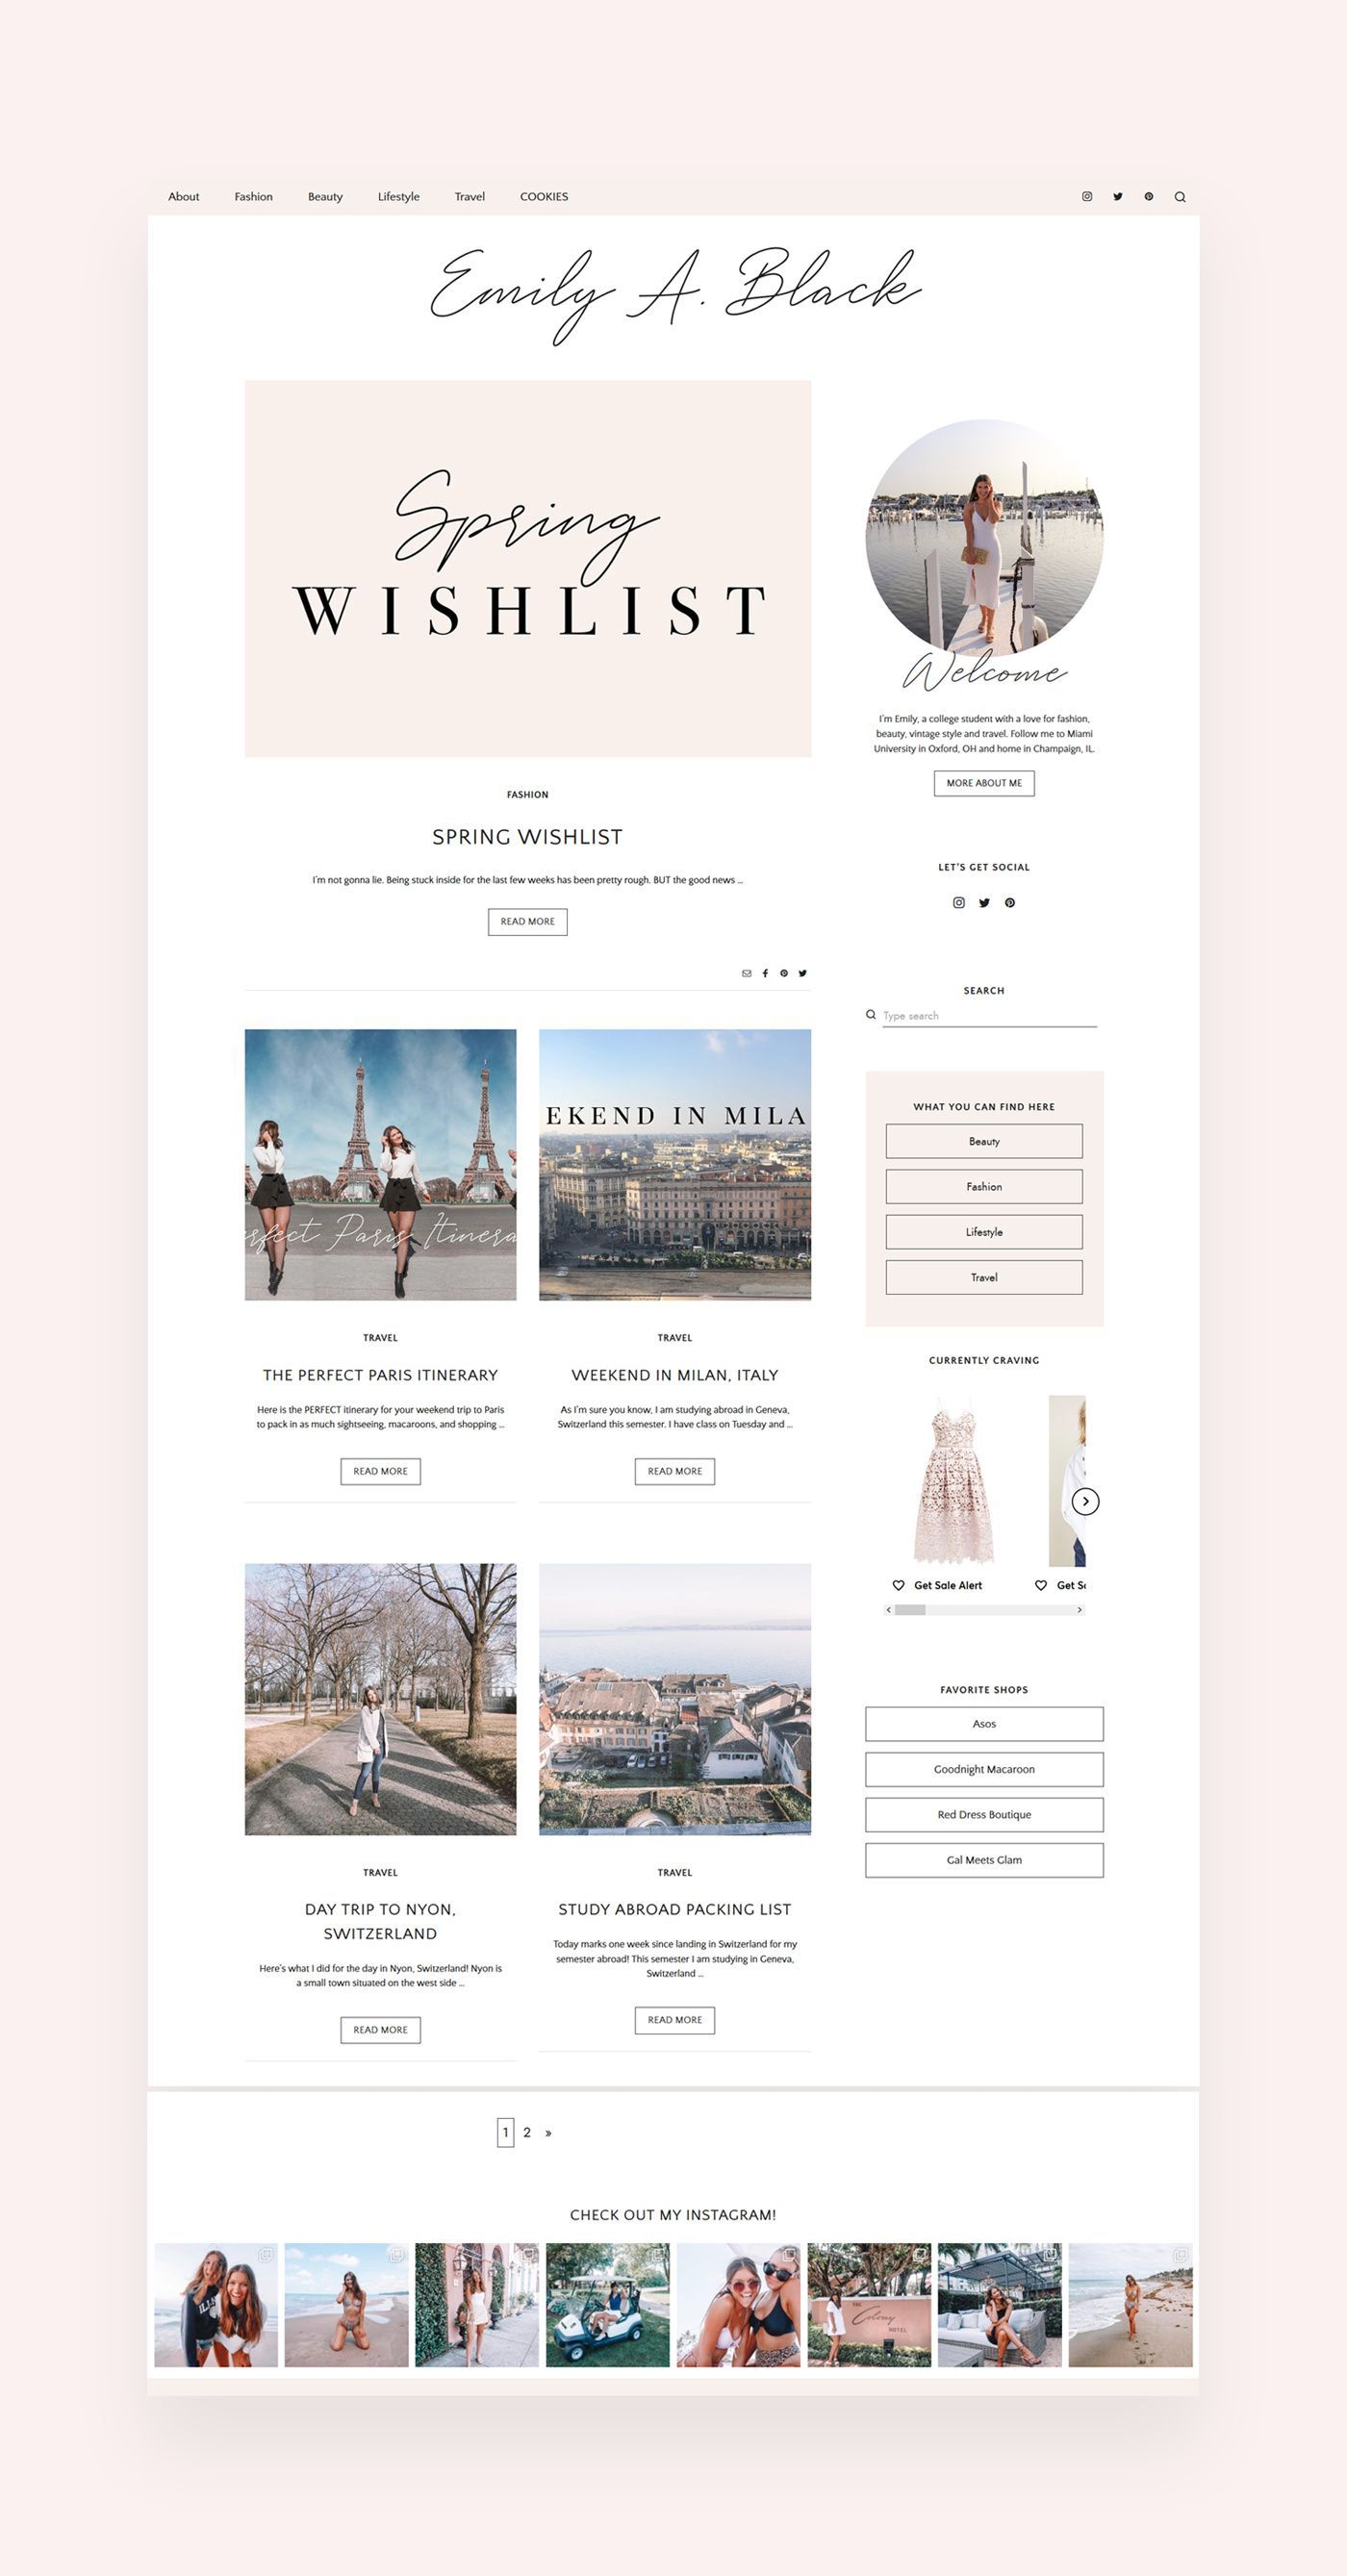 Blush Co Wordpress Theme My Boutique Themes In 2020 Wordpress Design Inspiration Wordpress Blog Design Blog Layout Design